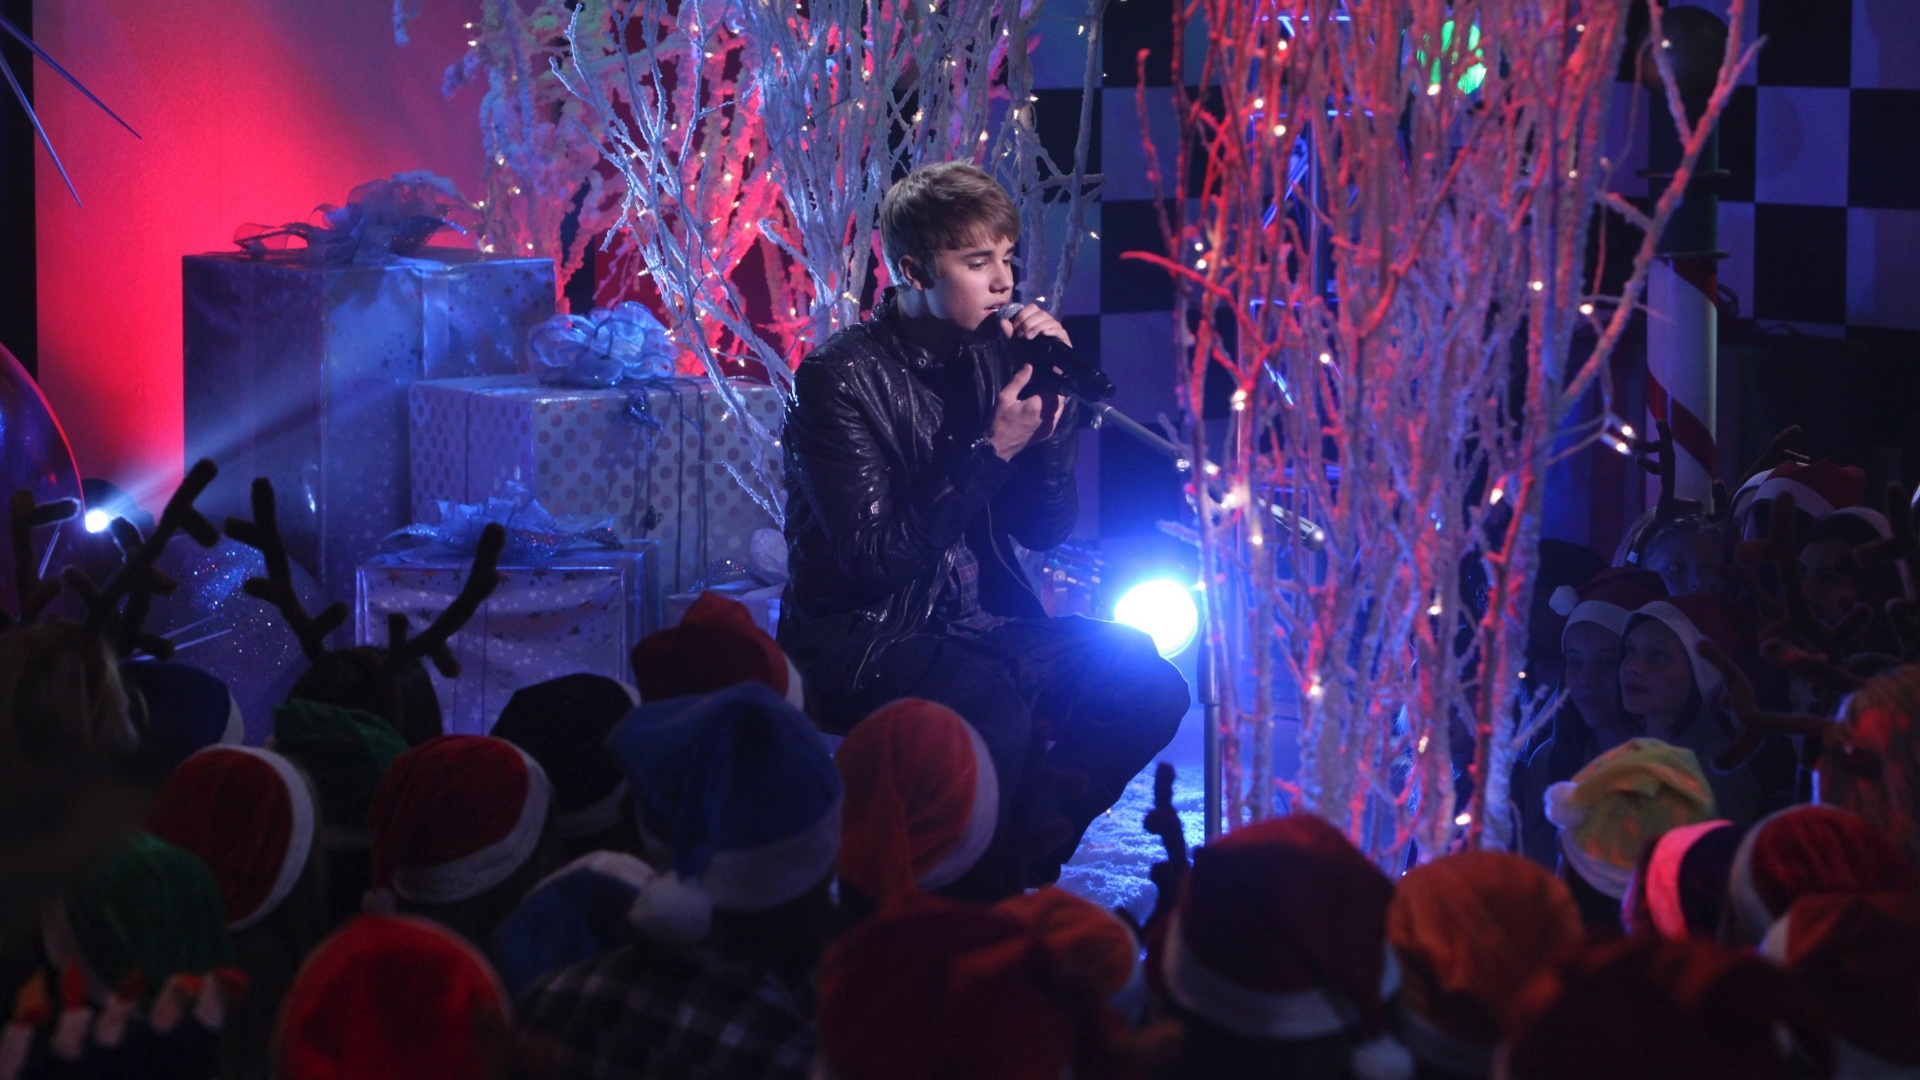 Justin Bieber participa do episódio de Natal do programa